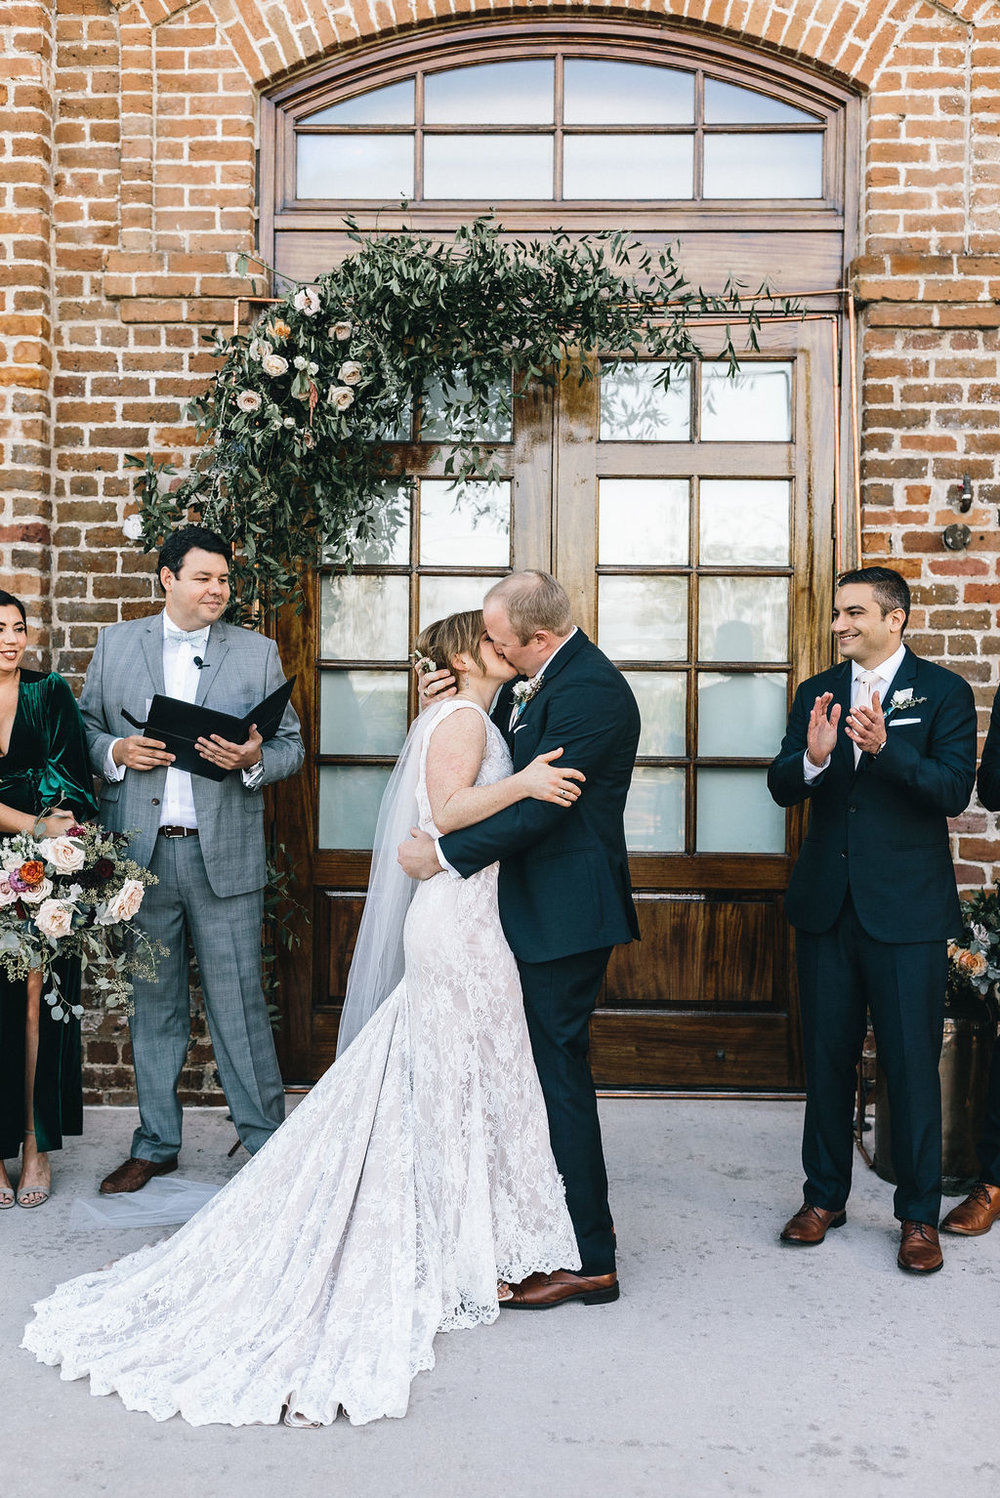 ivory_and_beau_savannah_bridal_shop_ivory_and_beau_couple_regan_and_brian_mackensey_alexander_photography_charles_h_morris_center_wedding_savannah_wedding_planner_savannah_florist_25.jpg